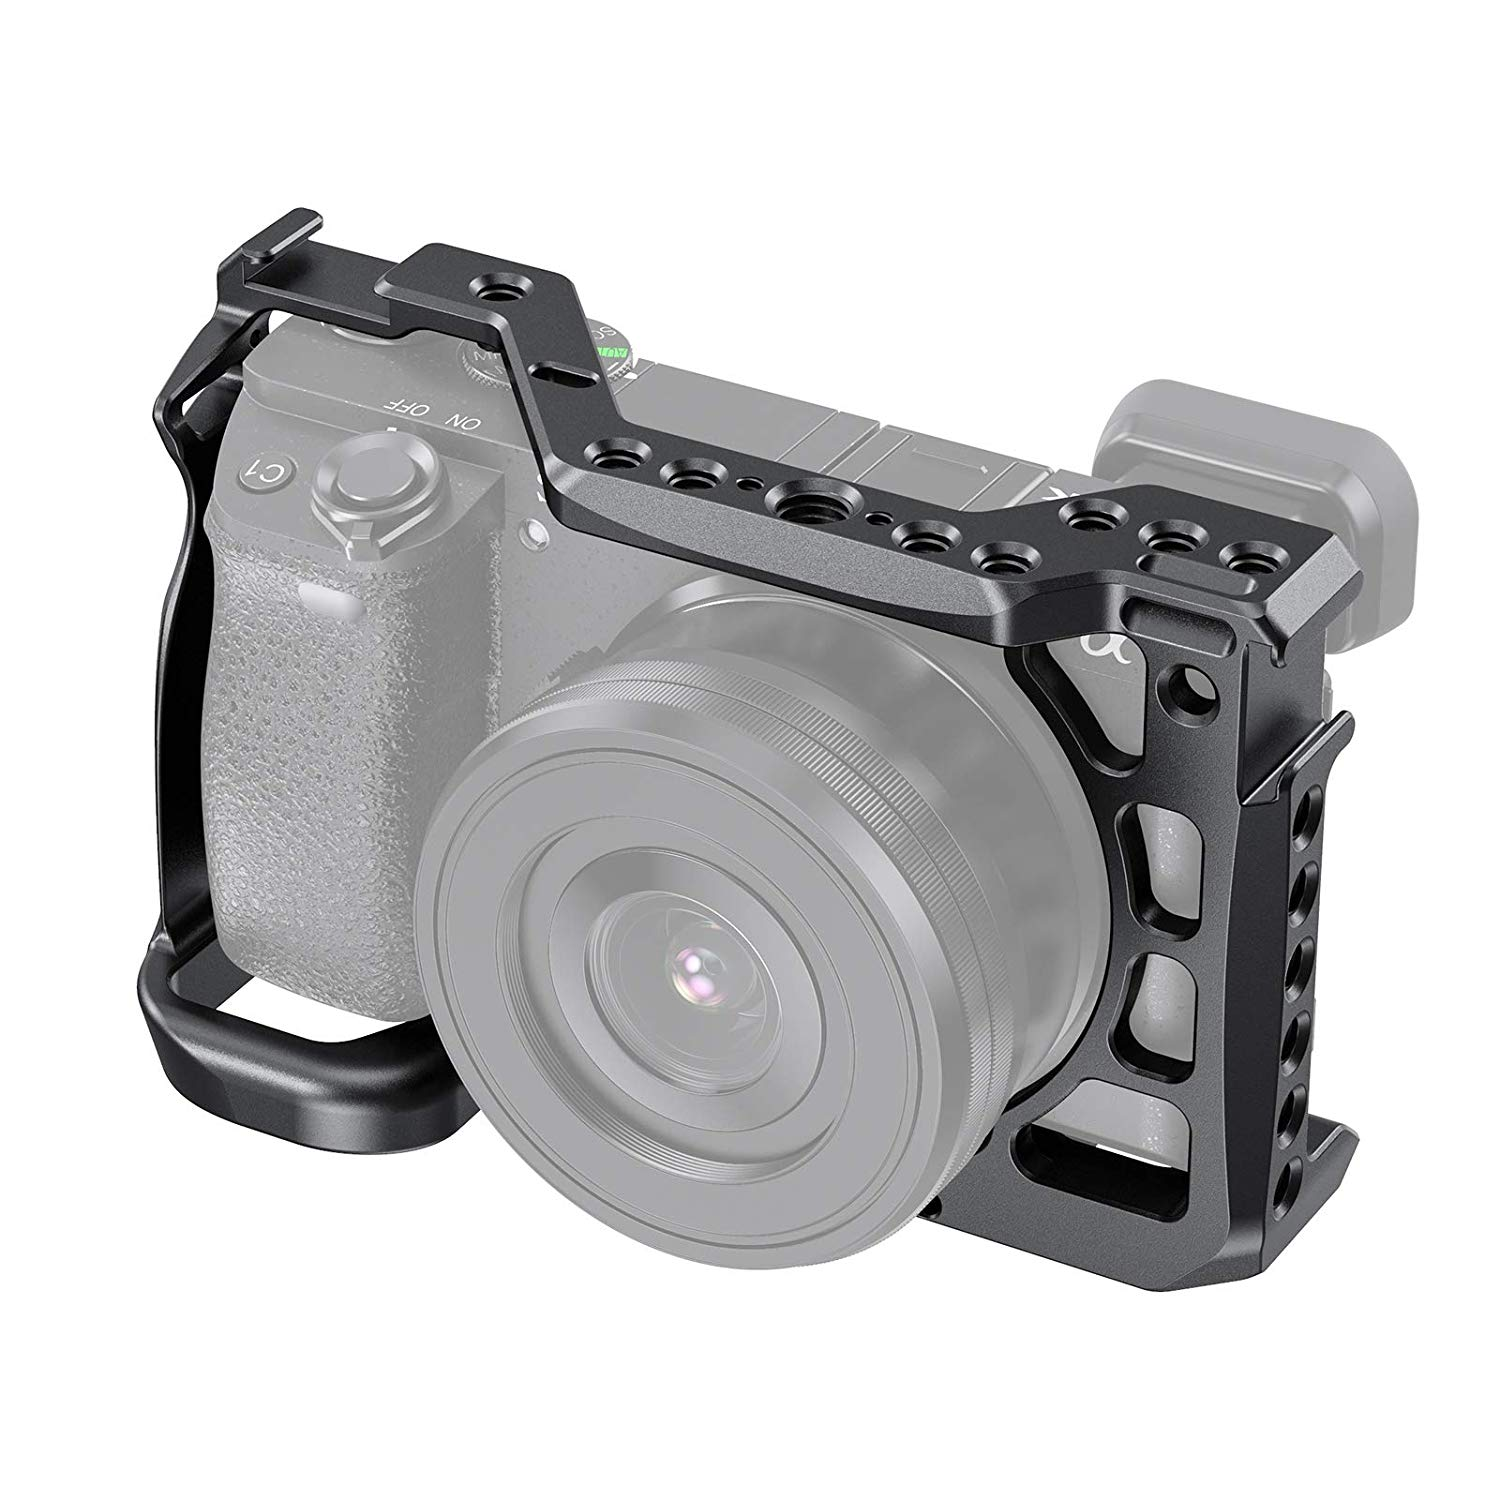 A6600 Cage